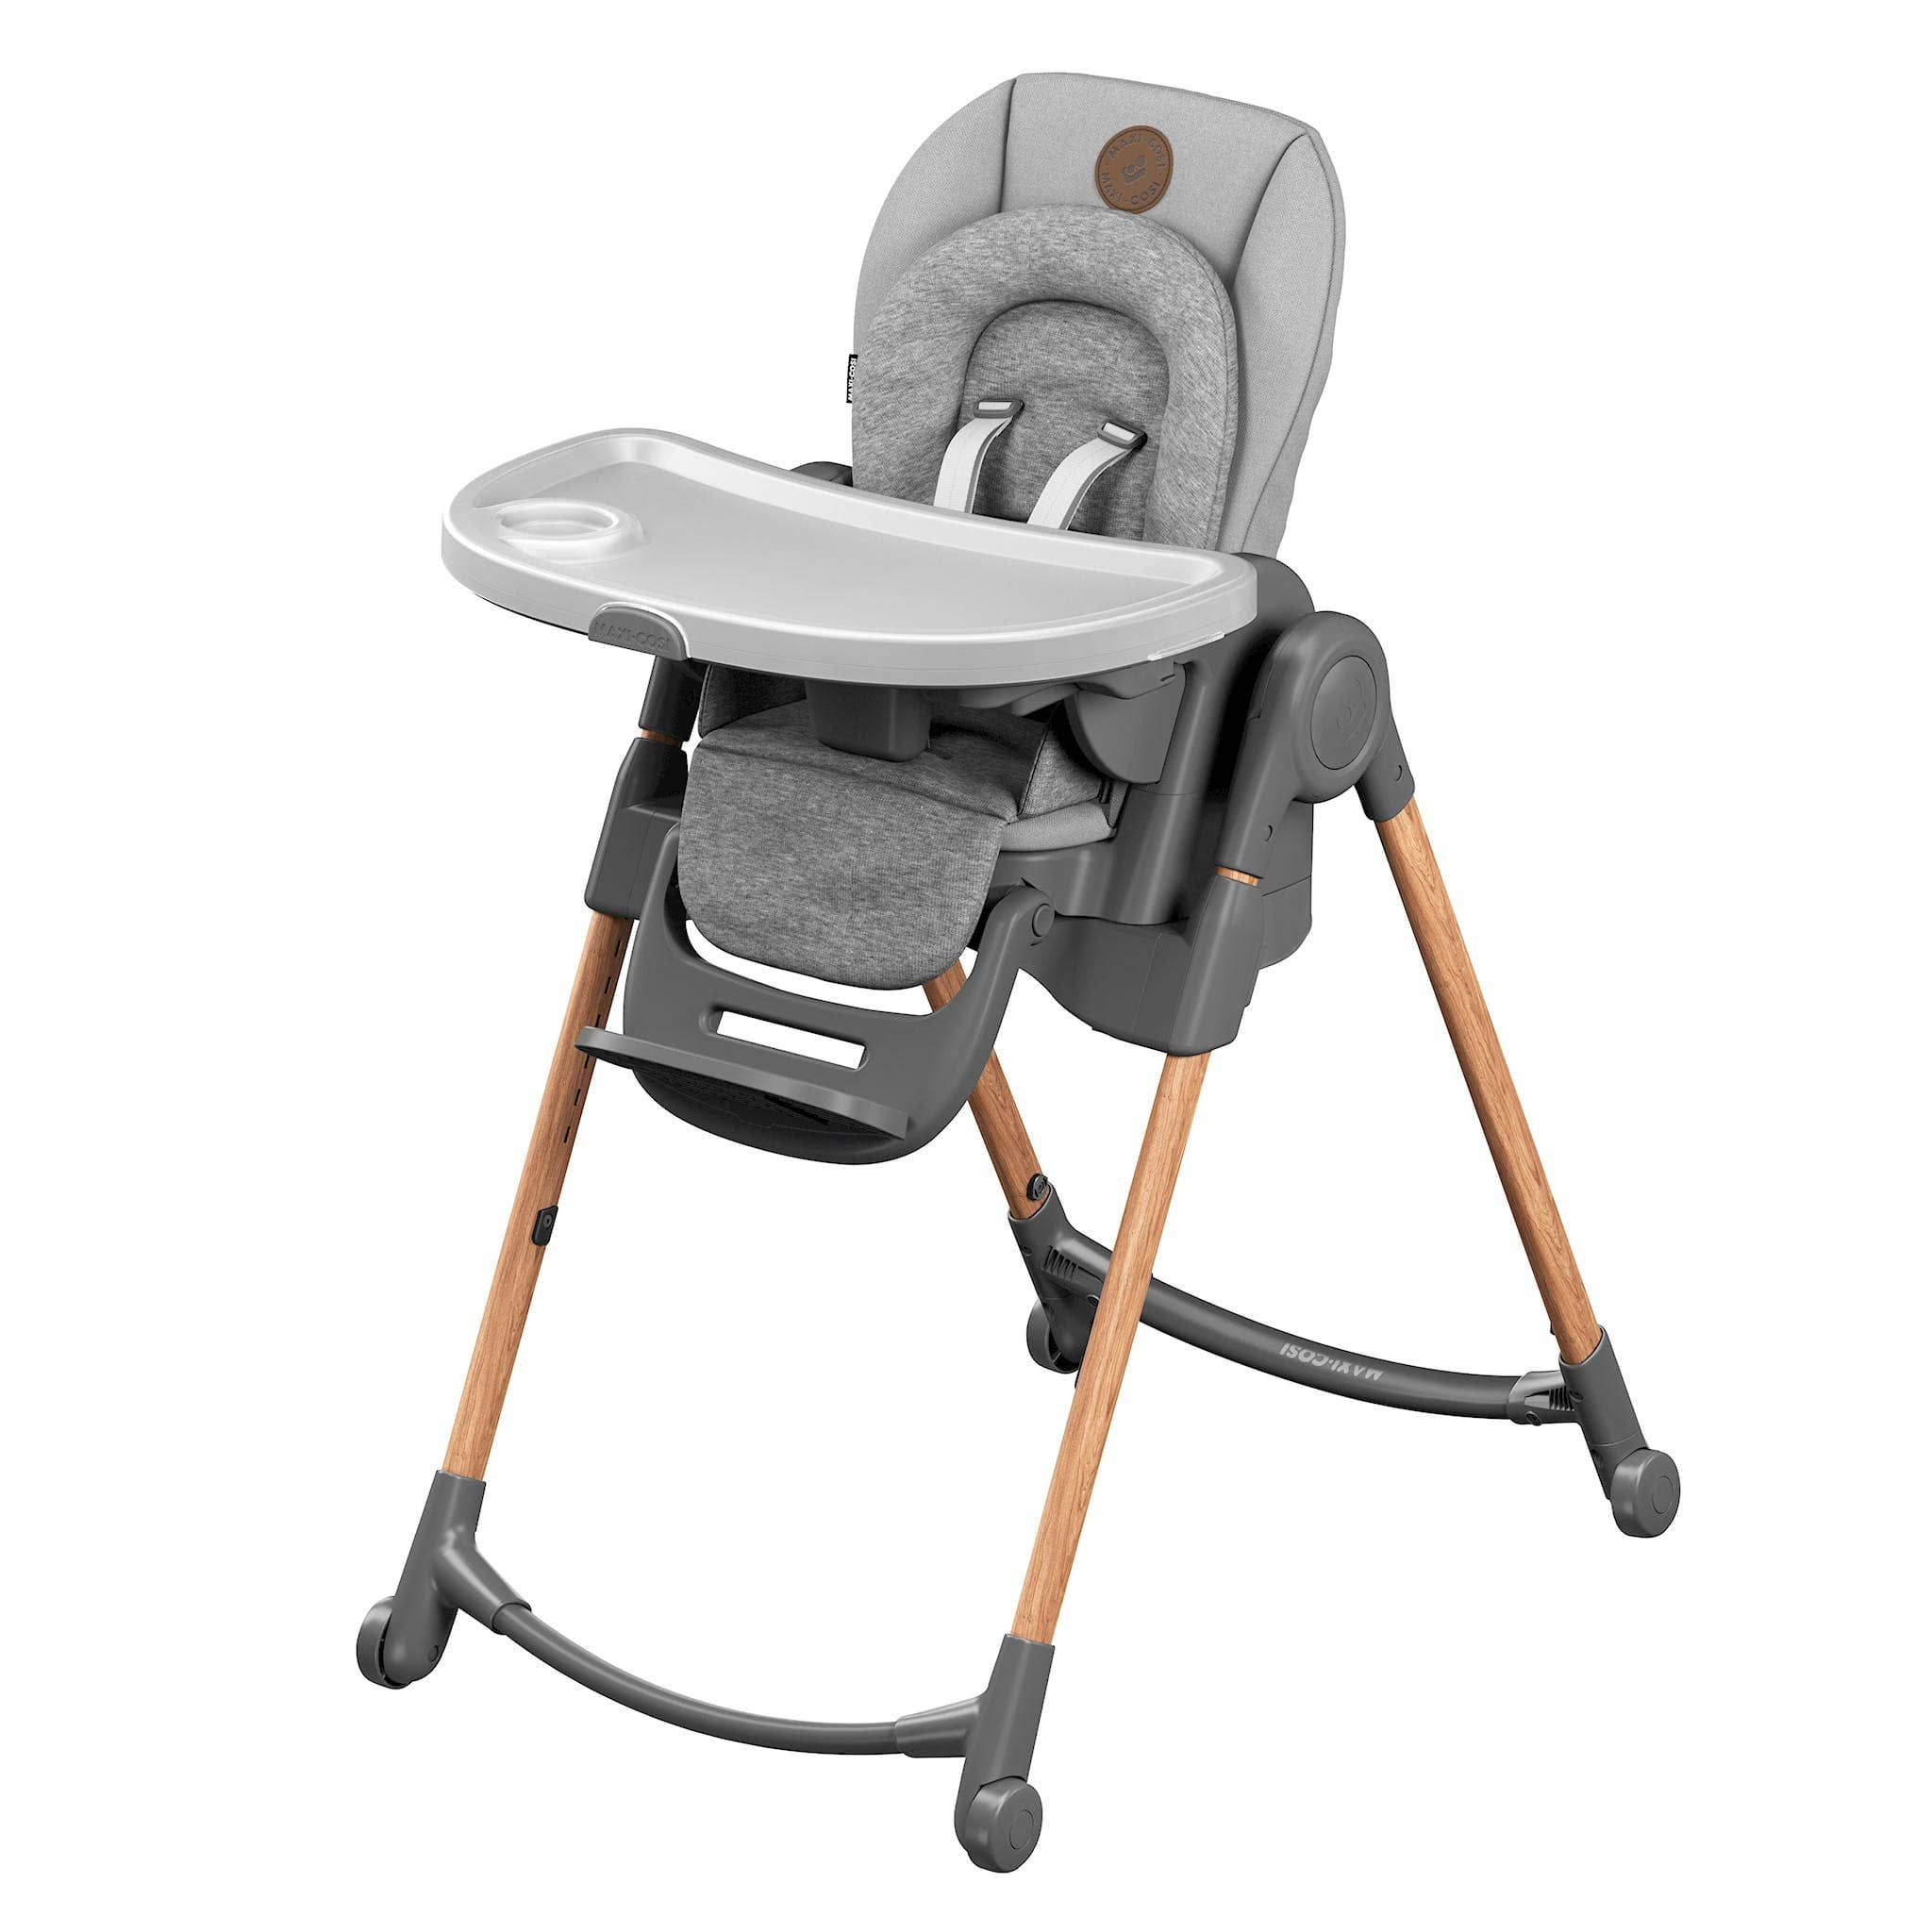 Chaise Haute Minla Gris Maxi Cosi Clement In 2020 High Chair Baby High Chair Baby Seat